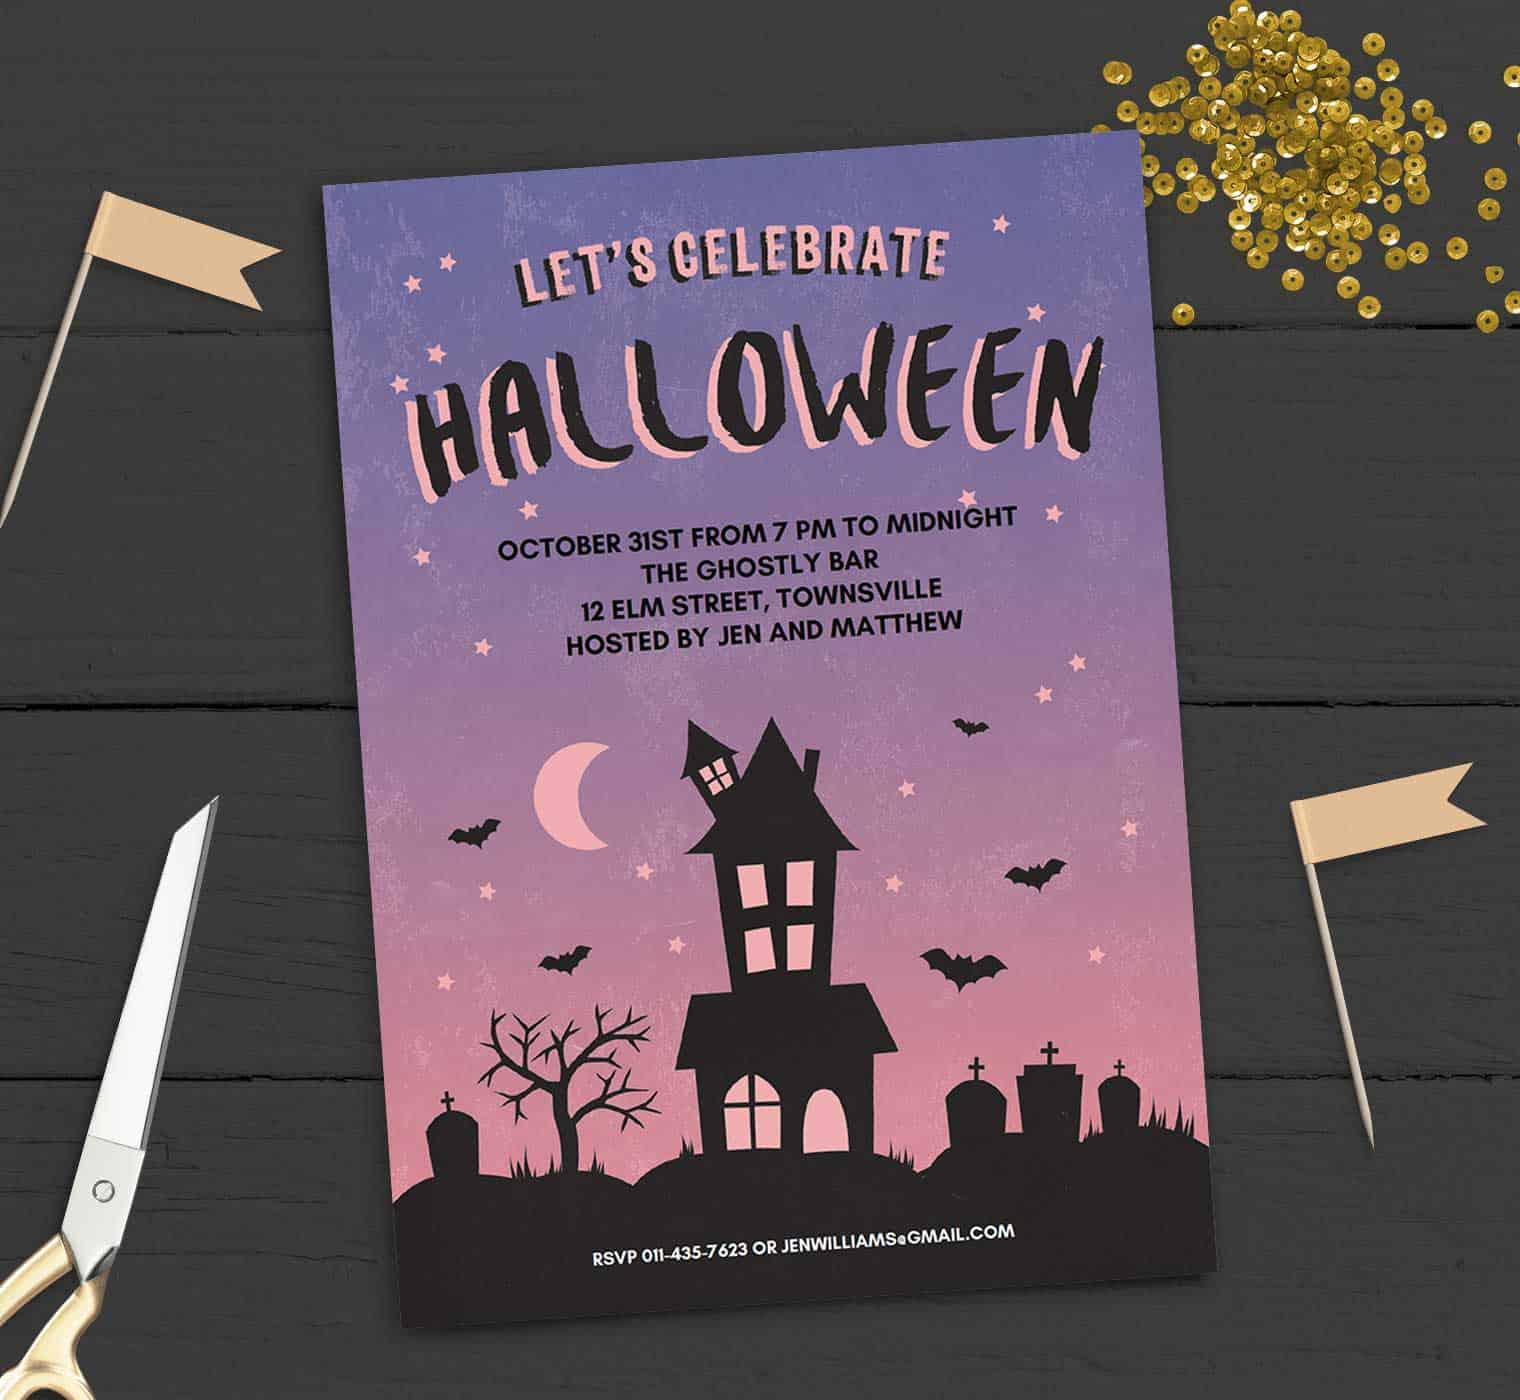 005 Stupendou Free Halloween Party Invitation Template Photo  Printable Birthday For Word DownloadFull